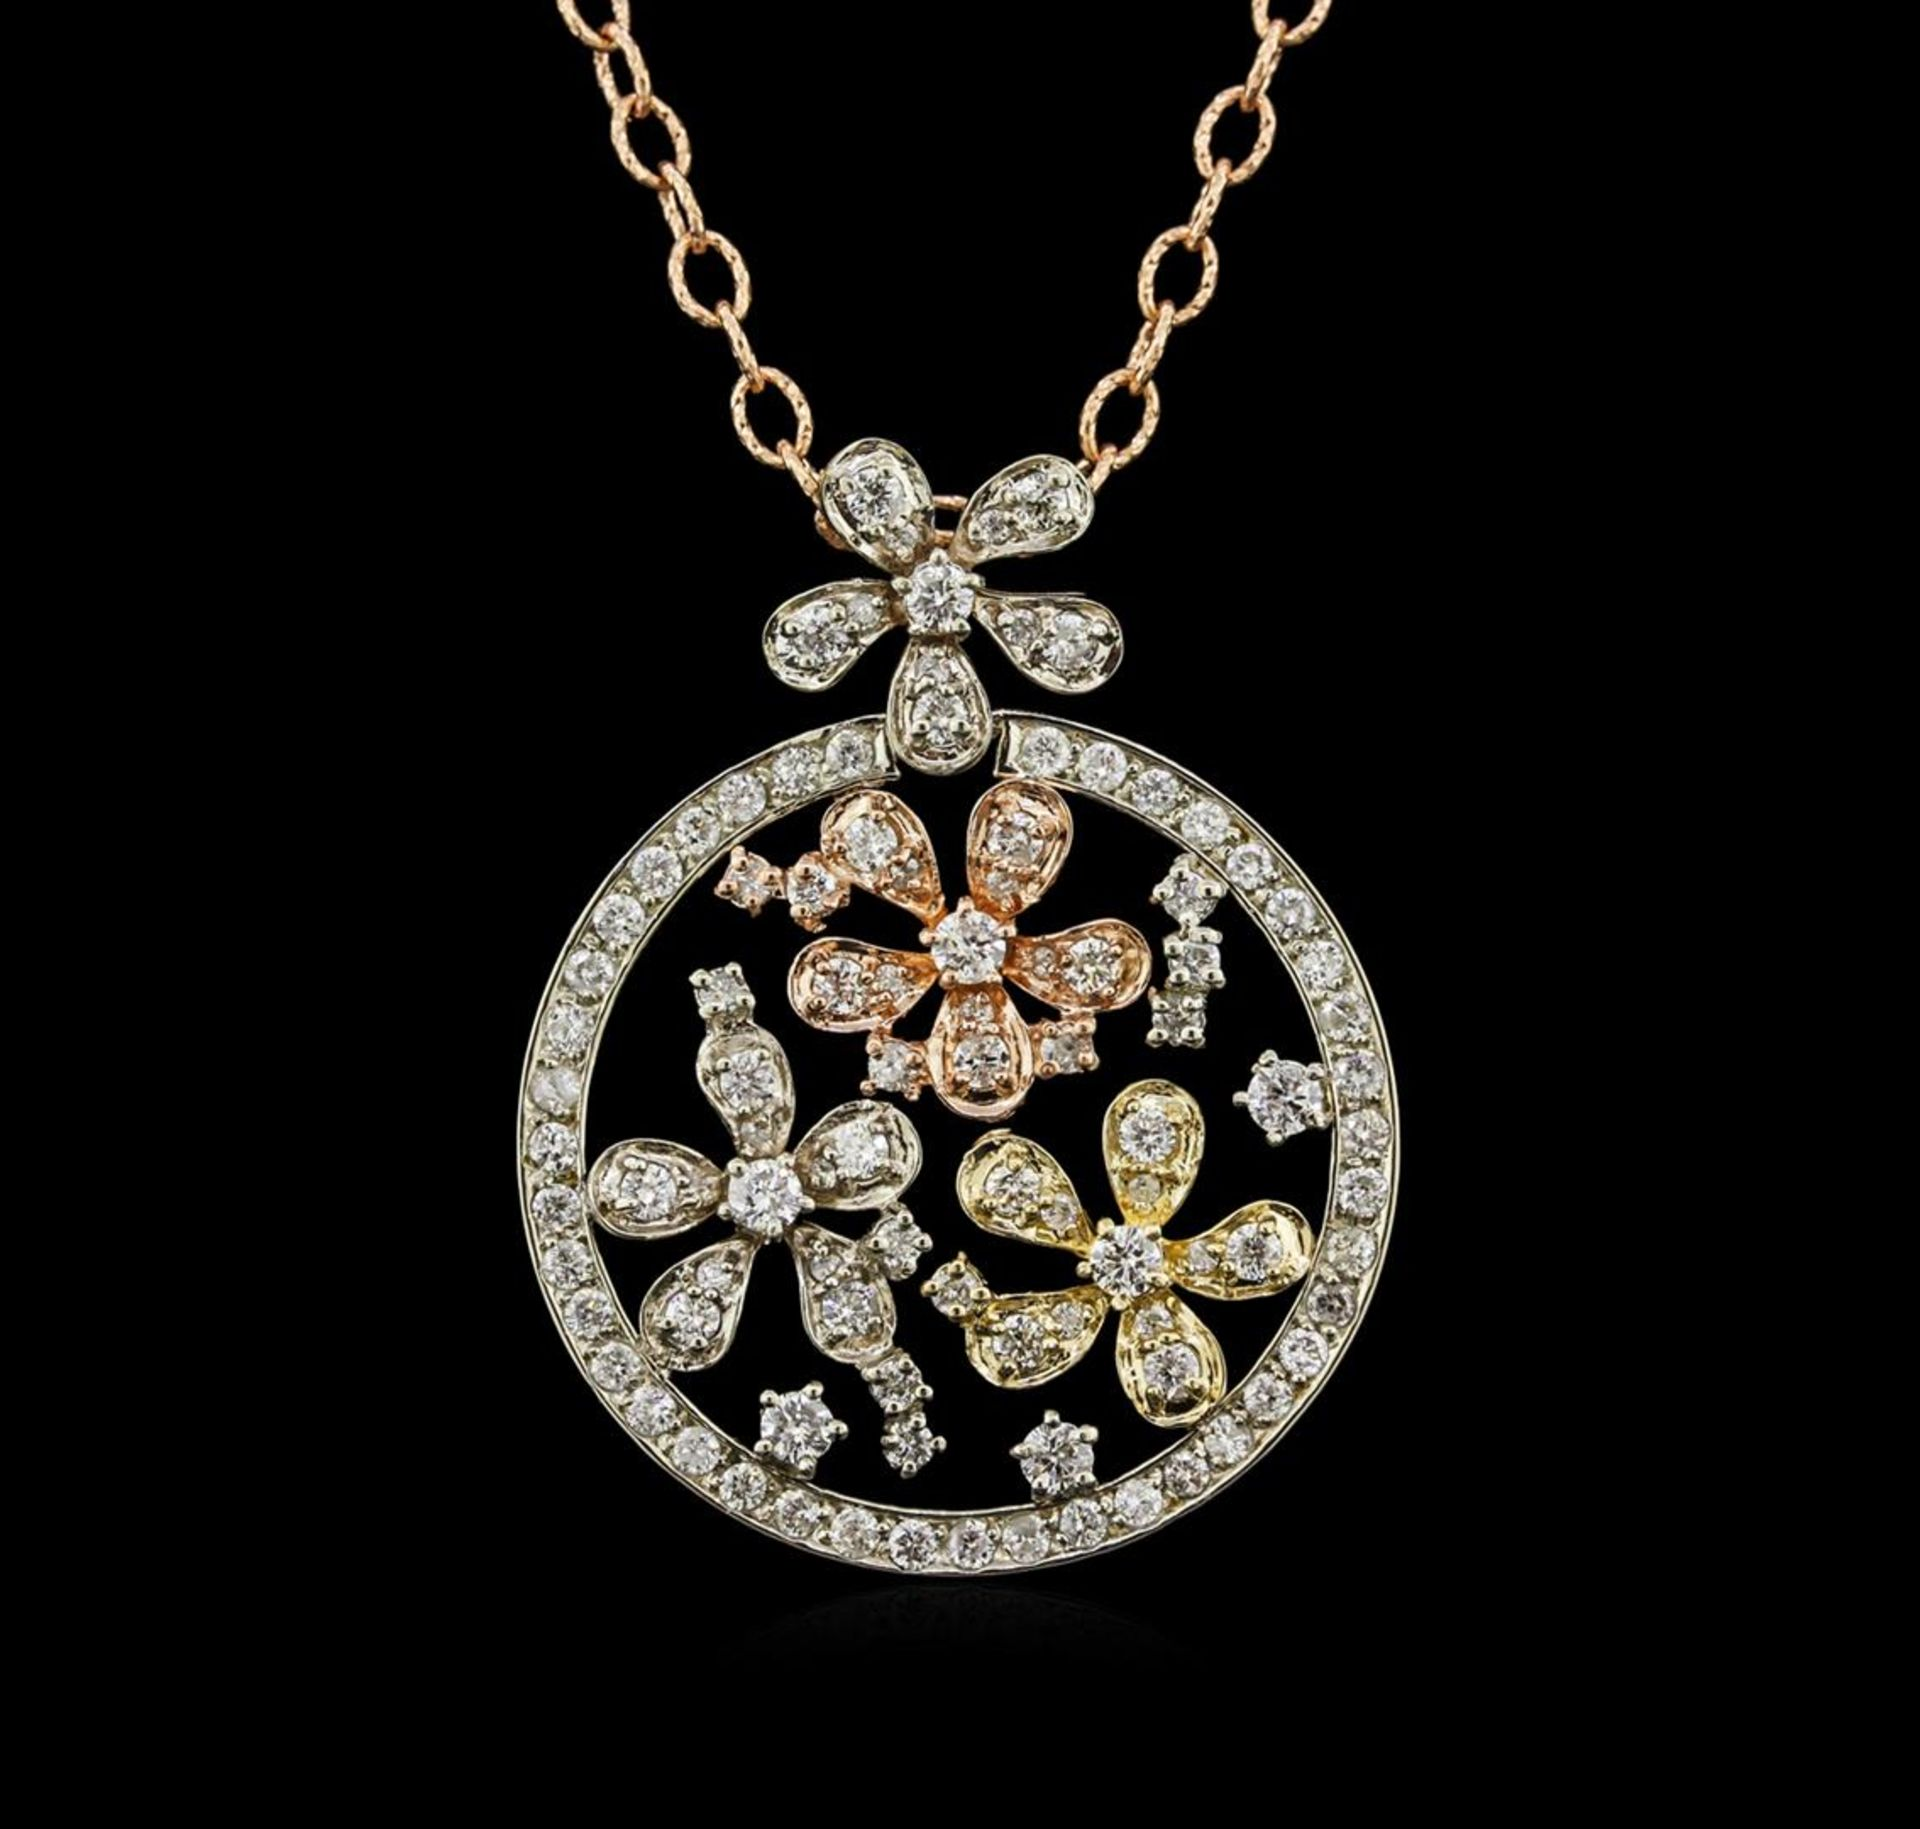 2.01 ctw Diamond Pendant With Chain - 14KT Tri Color Gold - Image 2 of 3